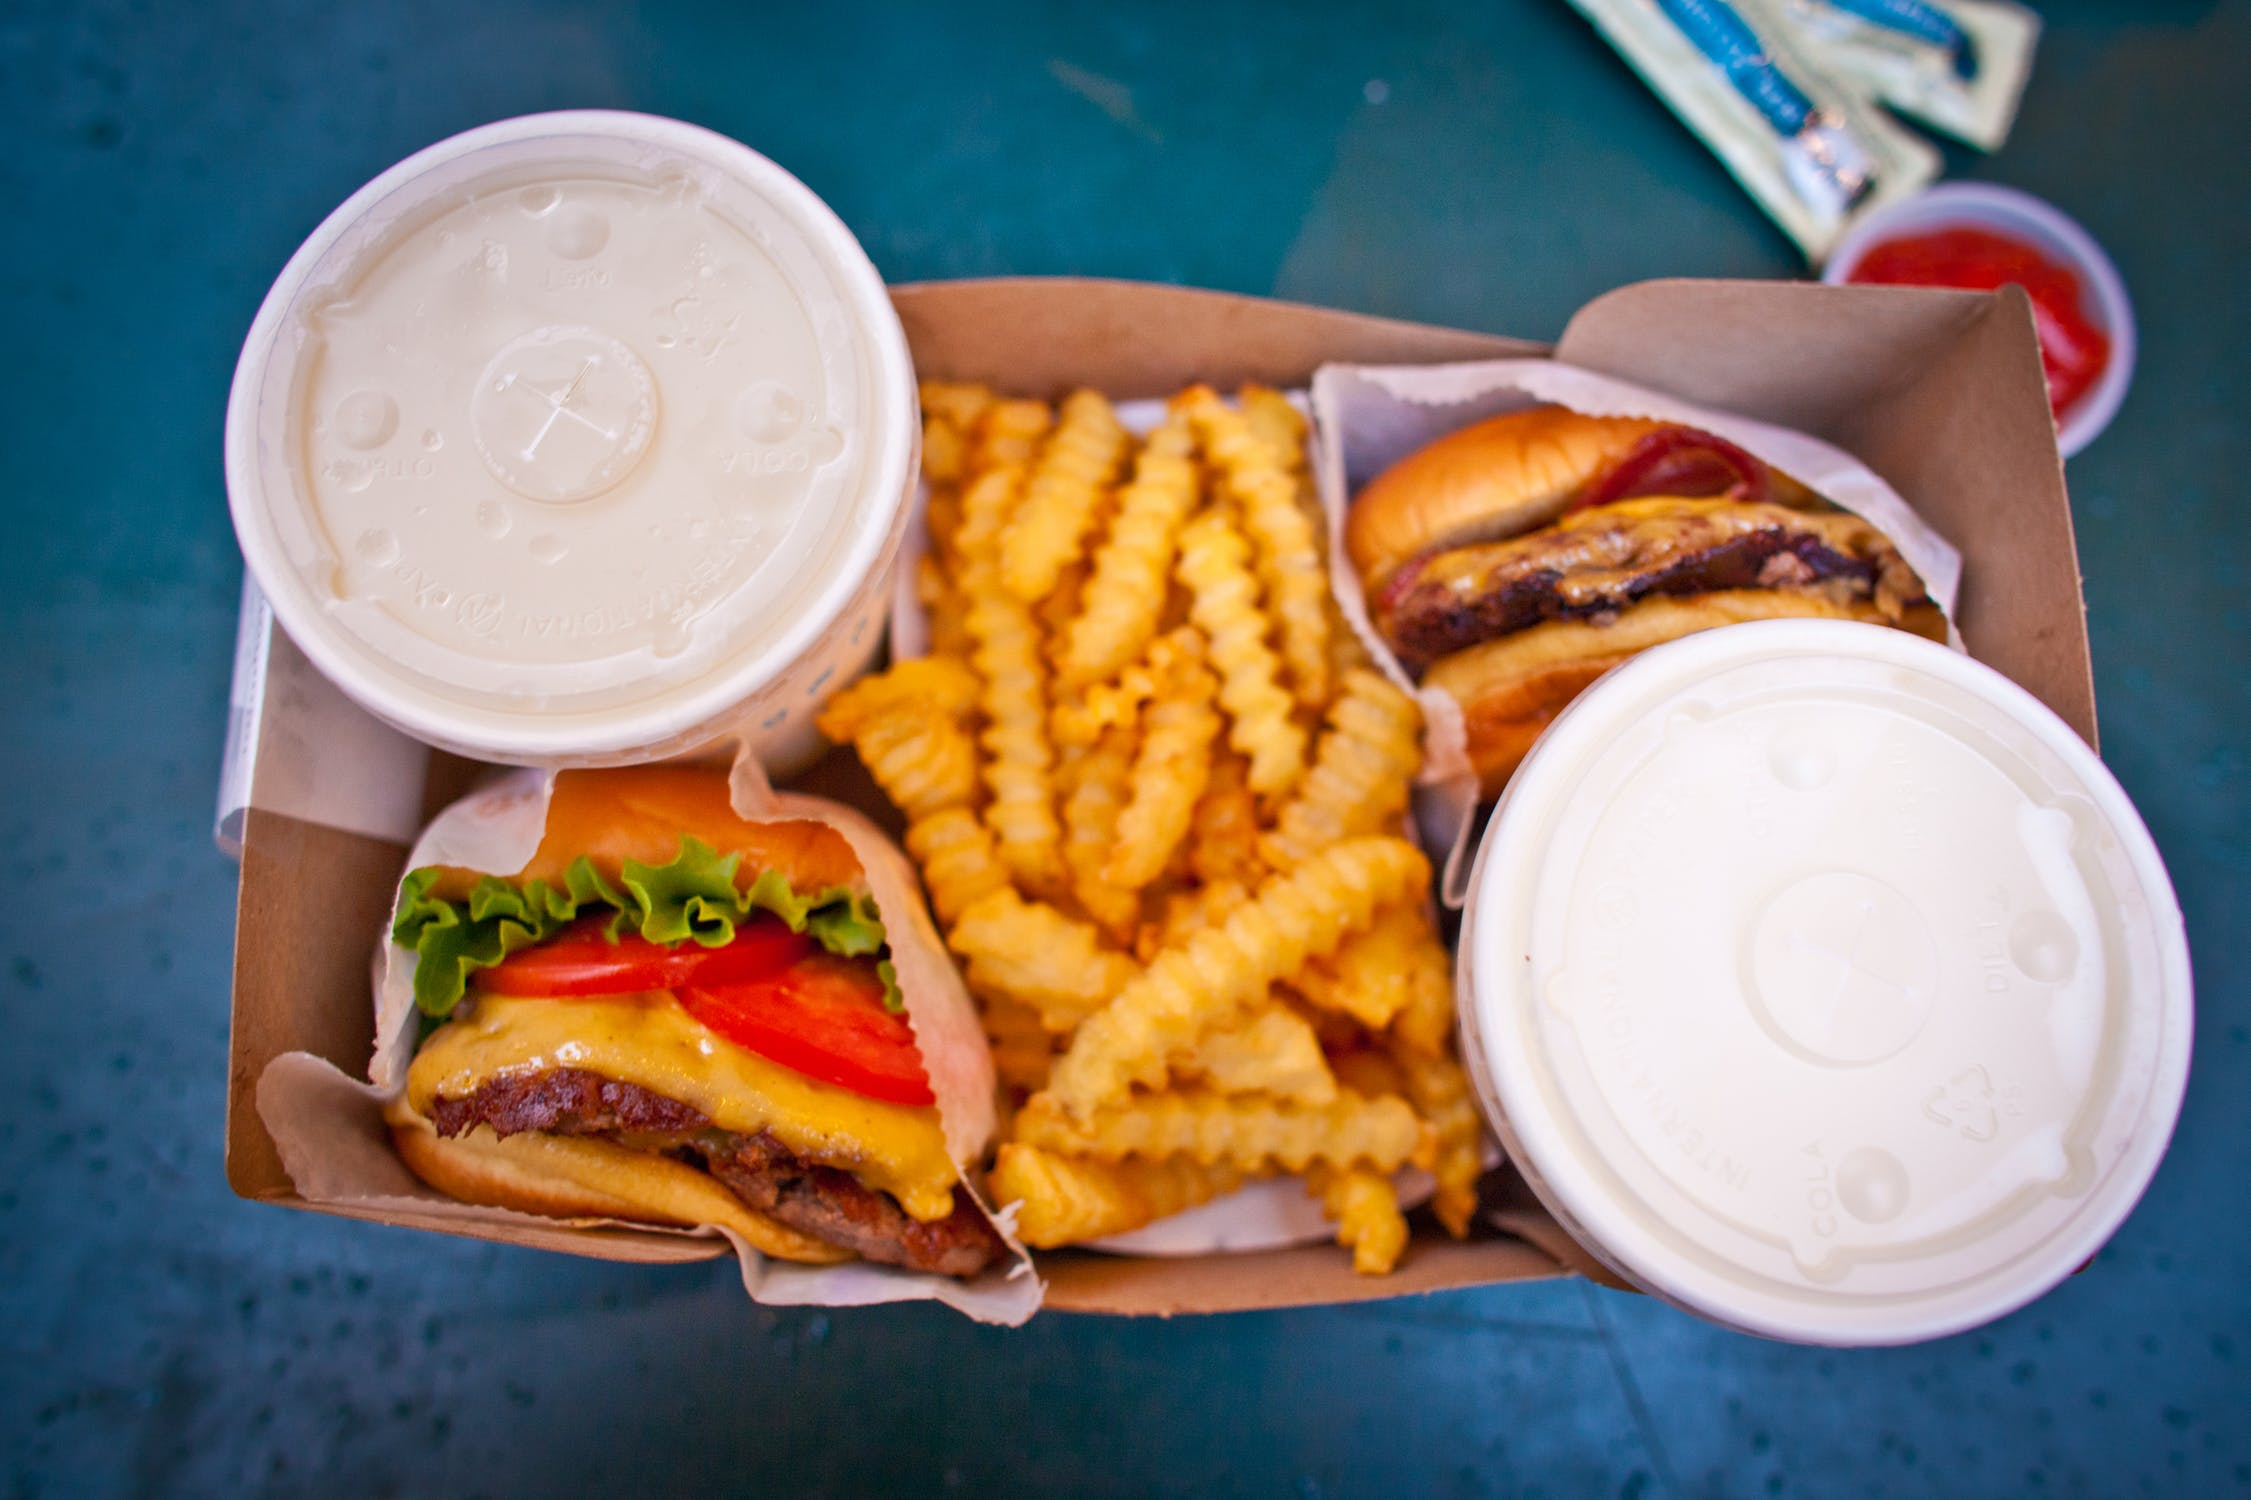 A box with burgers, fries and soda.